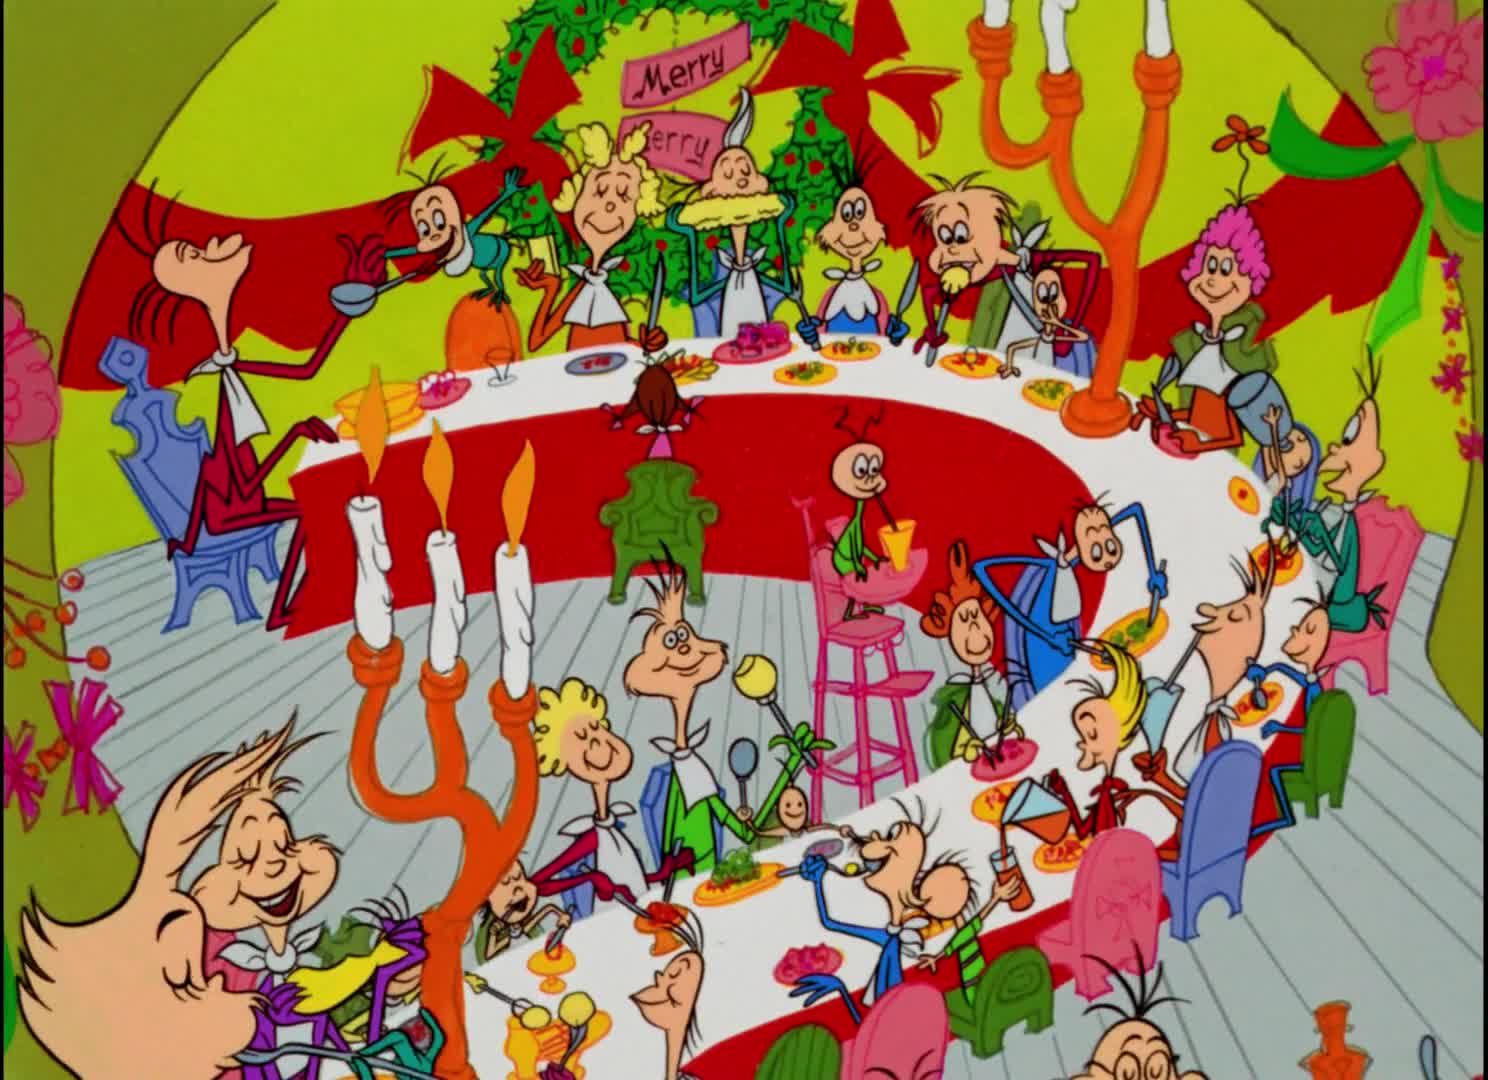 How The Grinch Stole Christmas Characters Cartoon.Christmas Classics How The Grinch Stole Christmas 1966